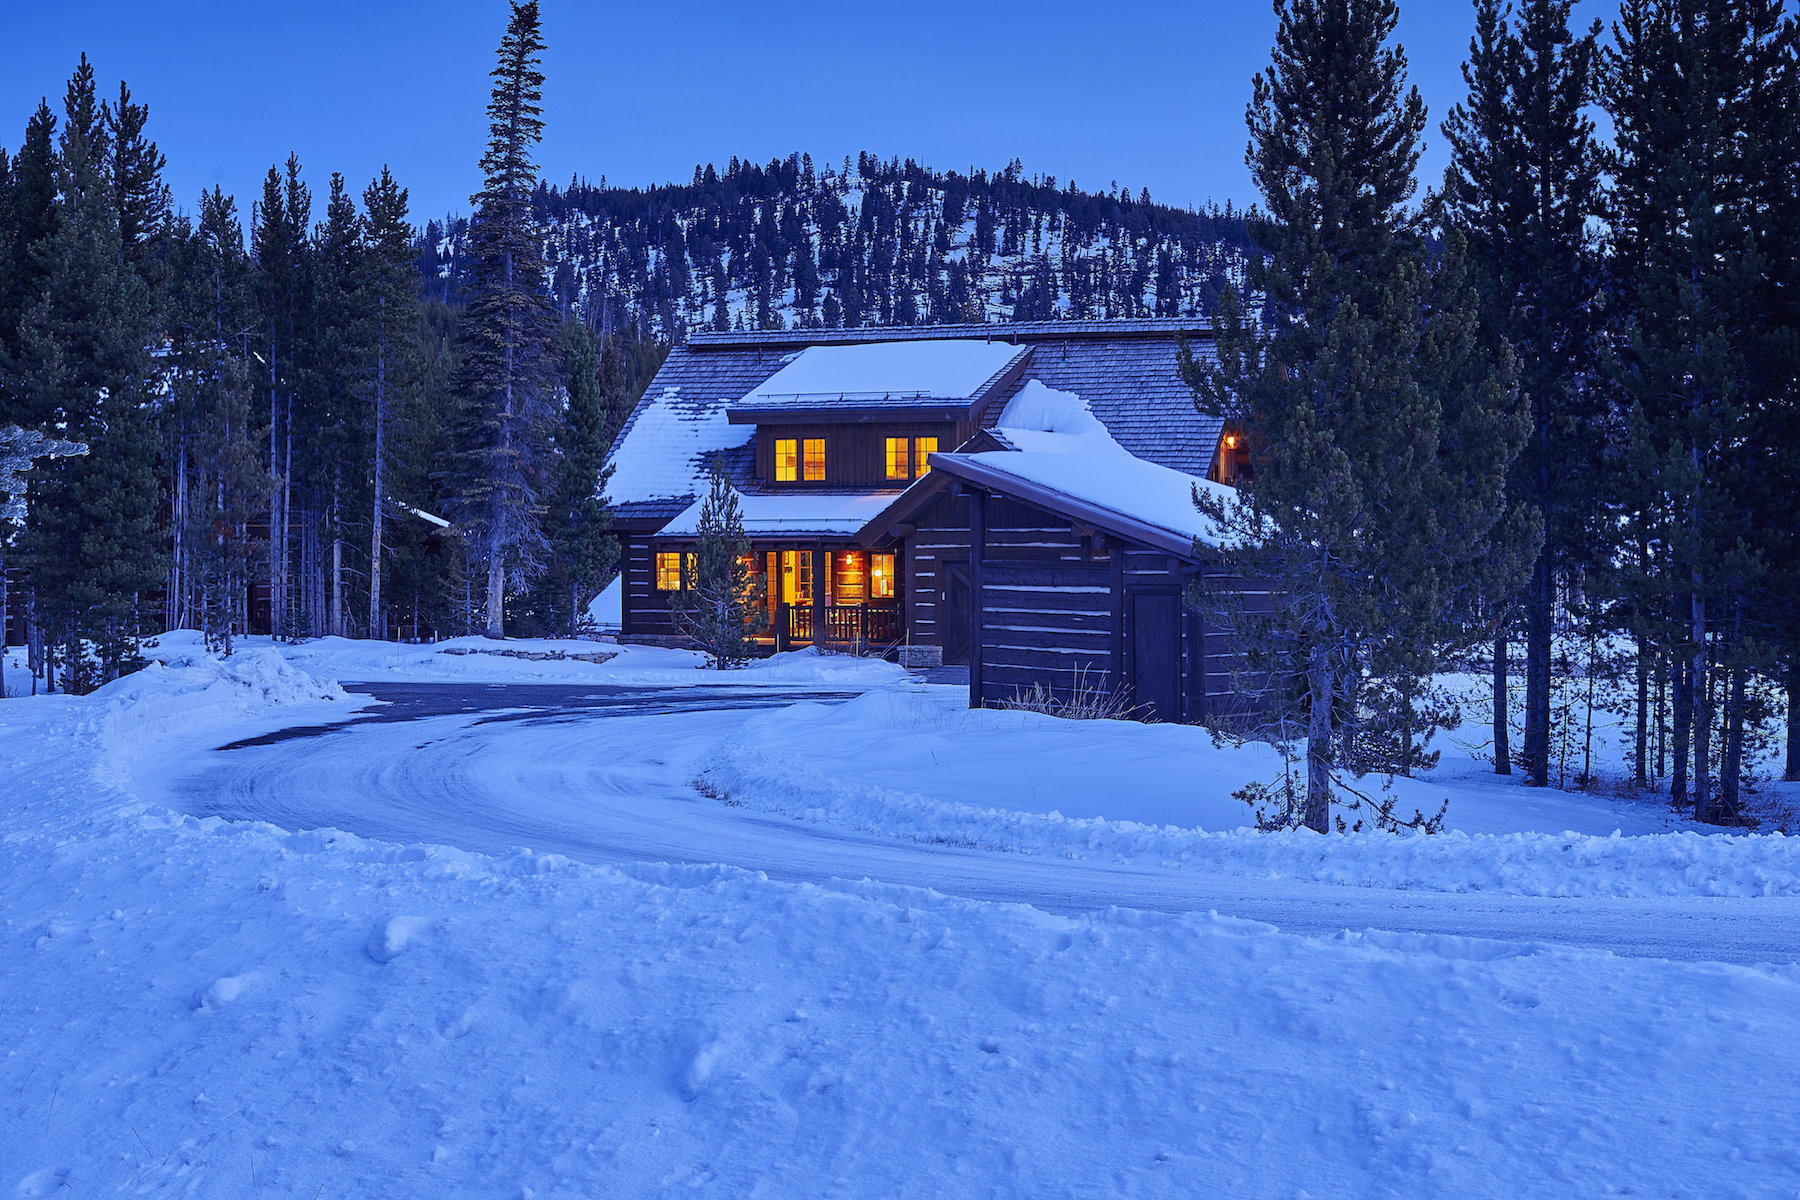 Single Family Home for Sale at Spanish Peaks Mountain Club Cabin 39 Homestead Cabin Fork Big Sky, Montana 59716 United States